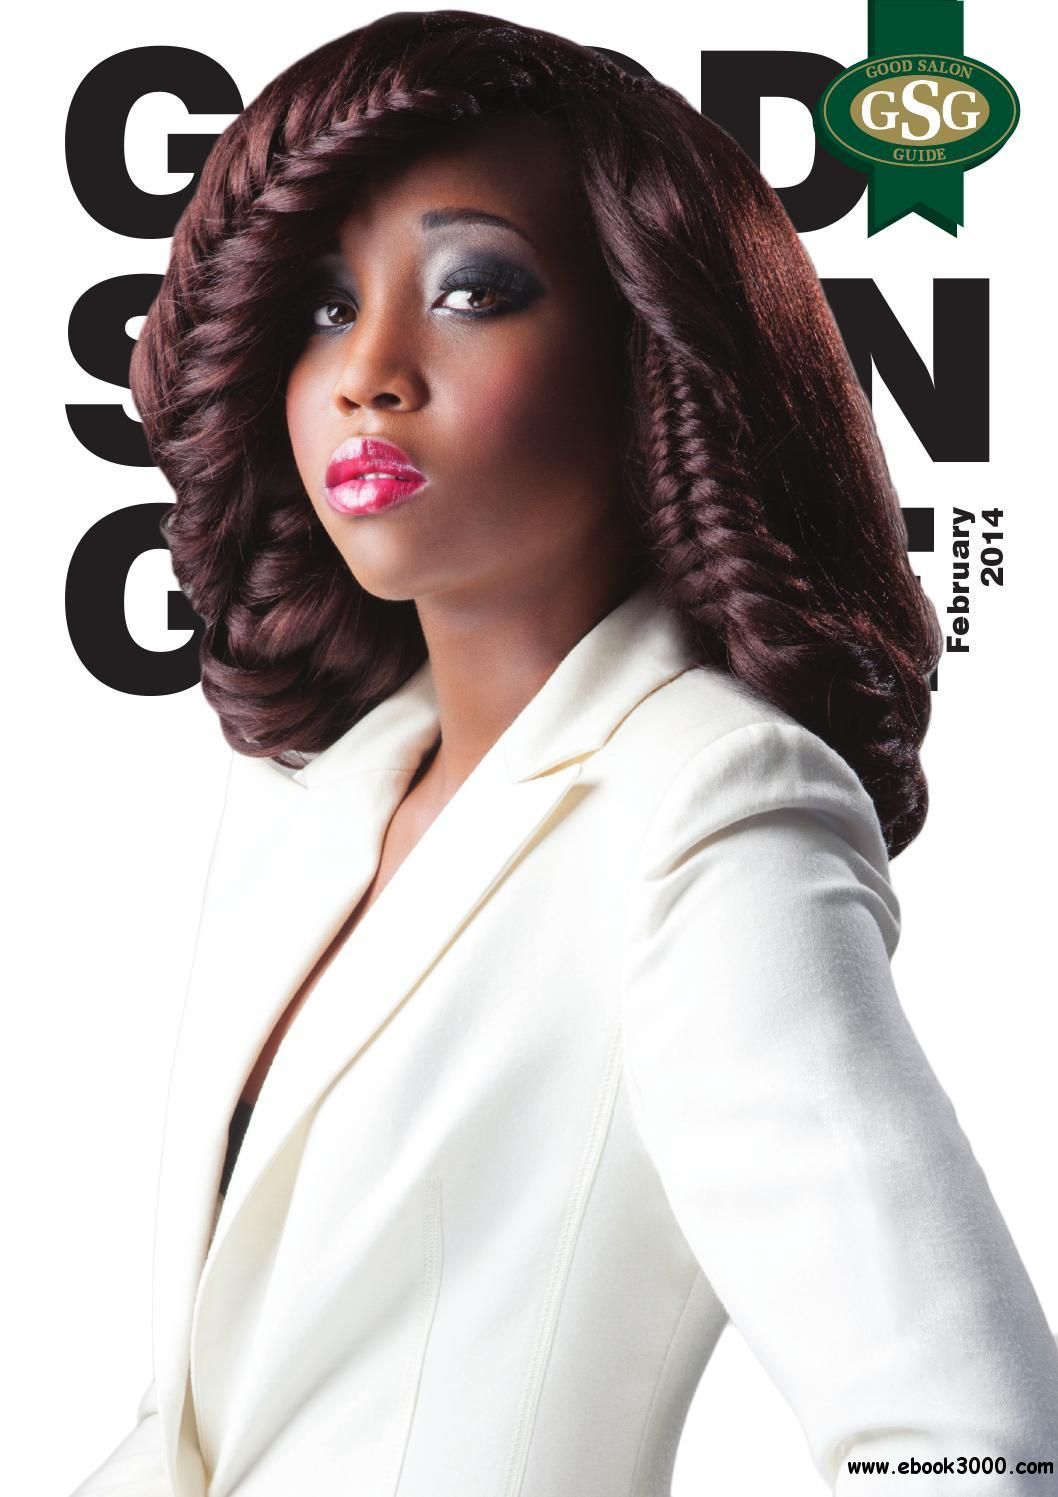 Good Salon Guide - February 2014 free download